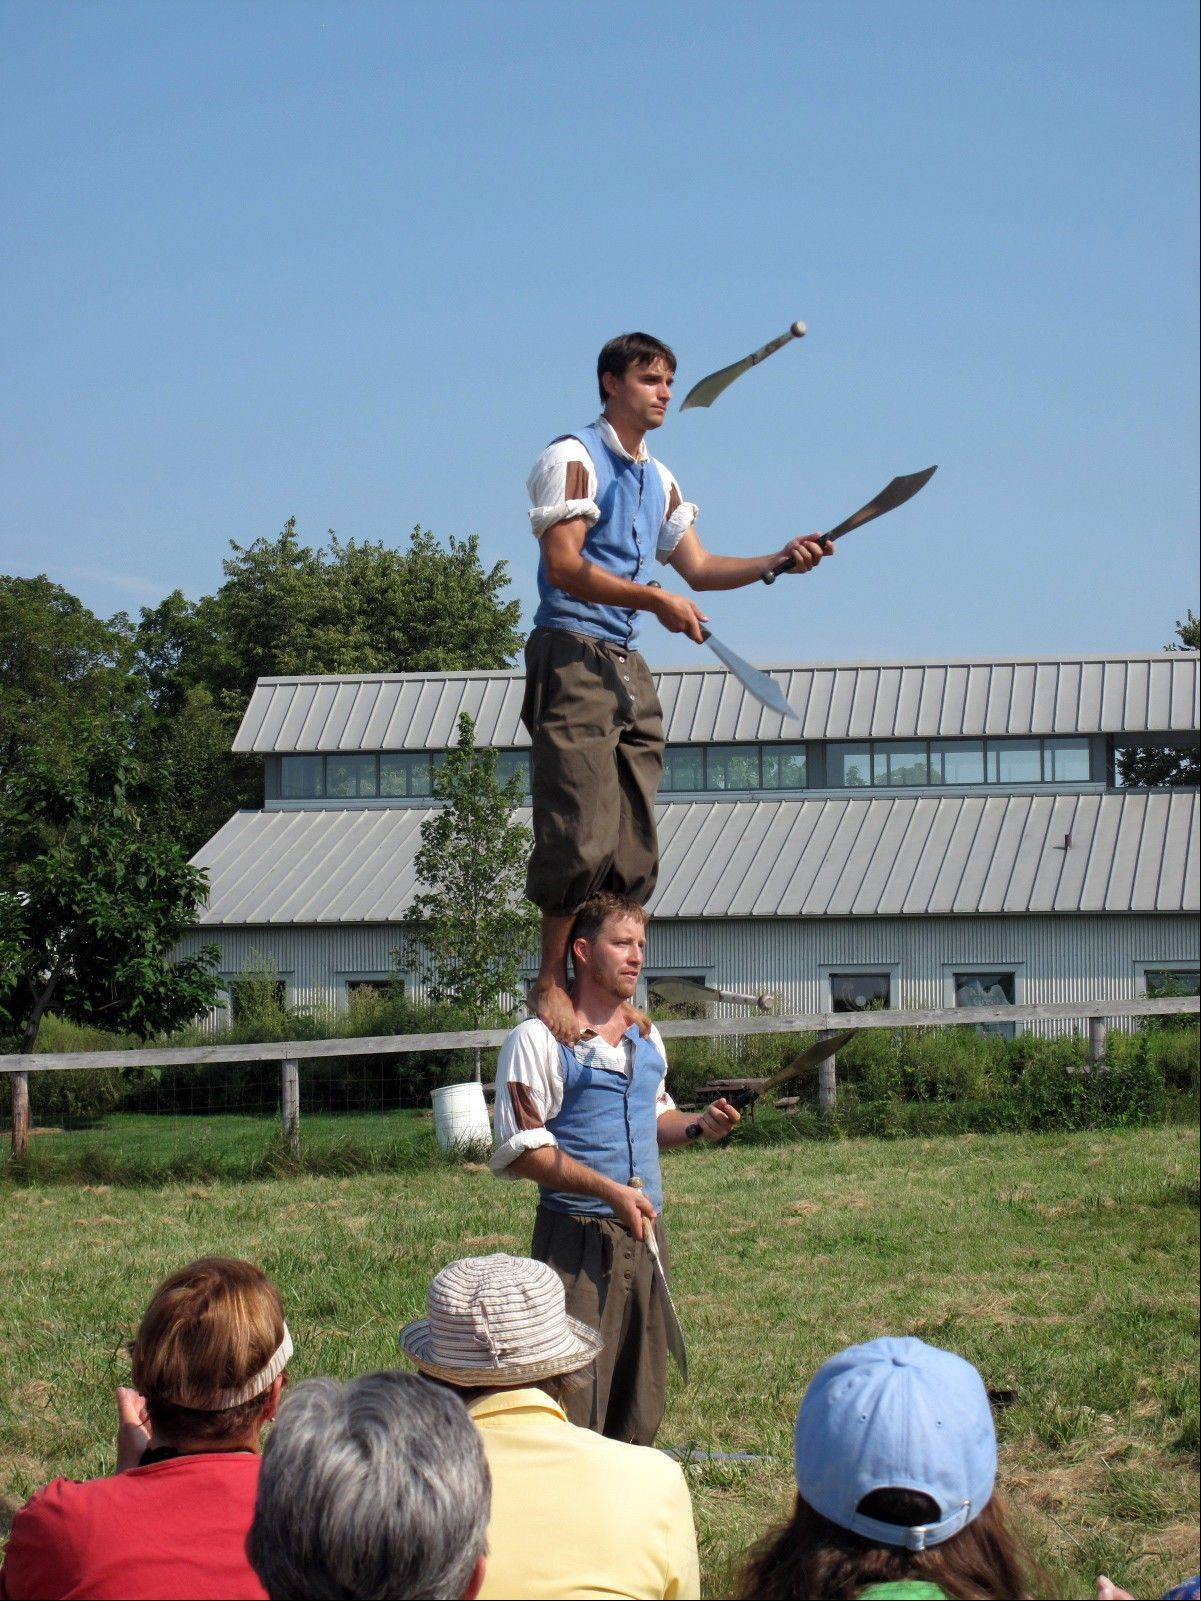 See jugglers and more at the old-fashioned Country Fair at Kline Creek Farm in West Chicago.